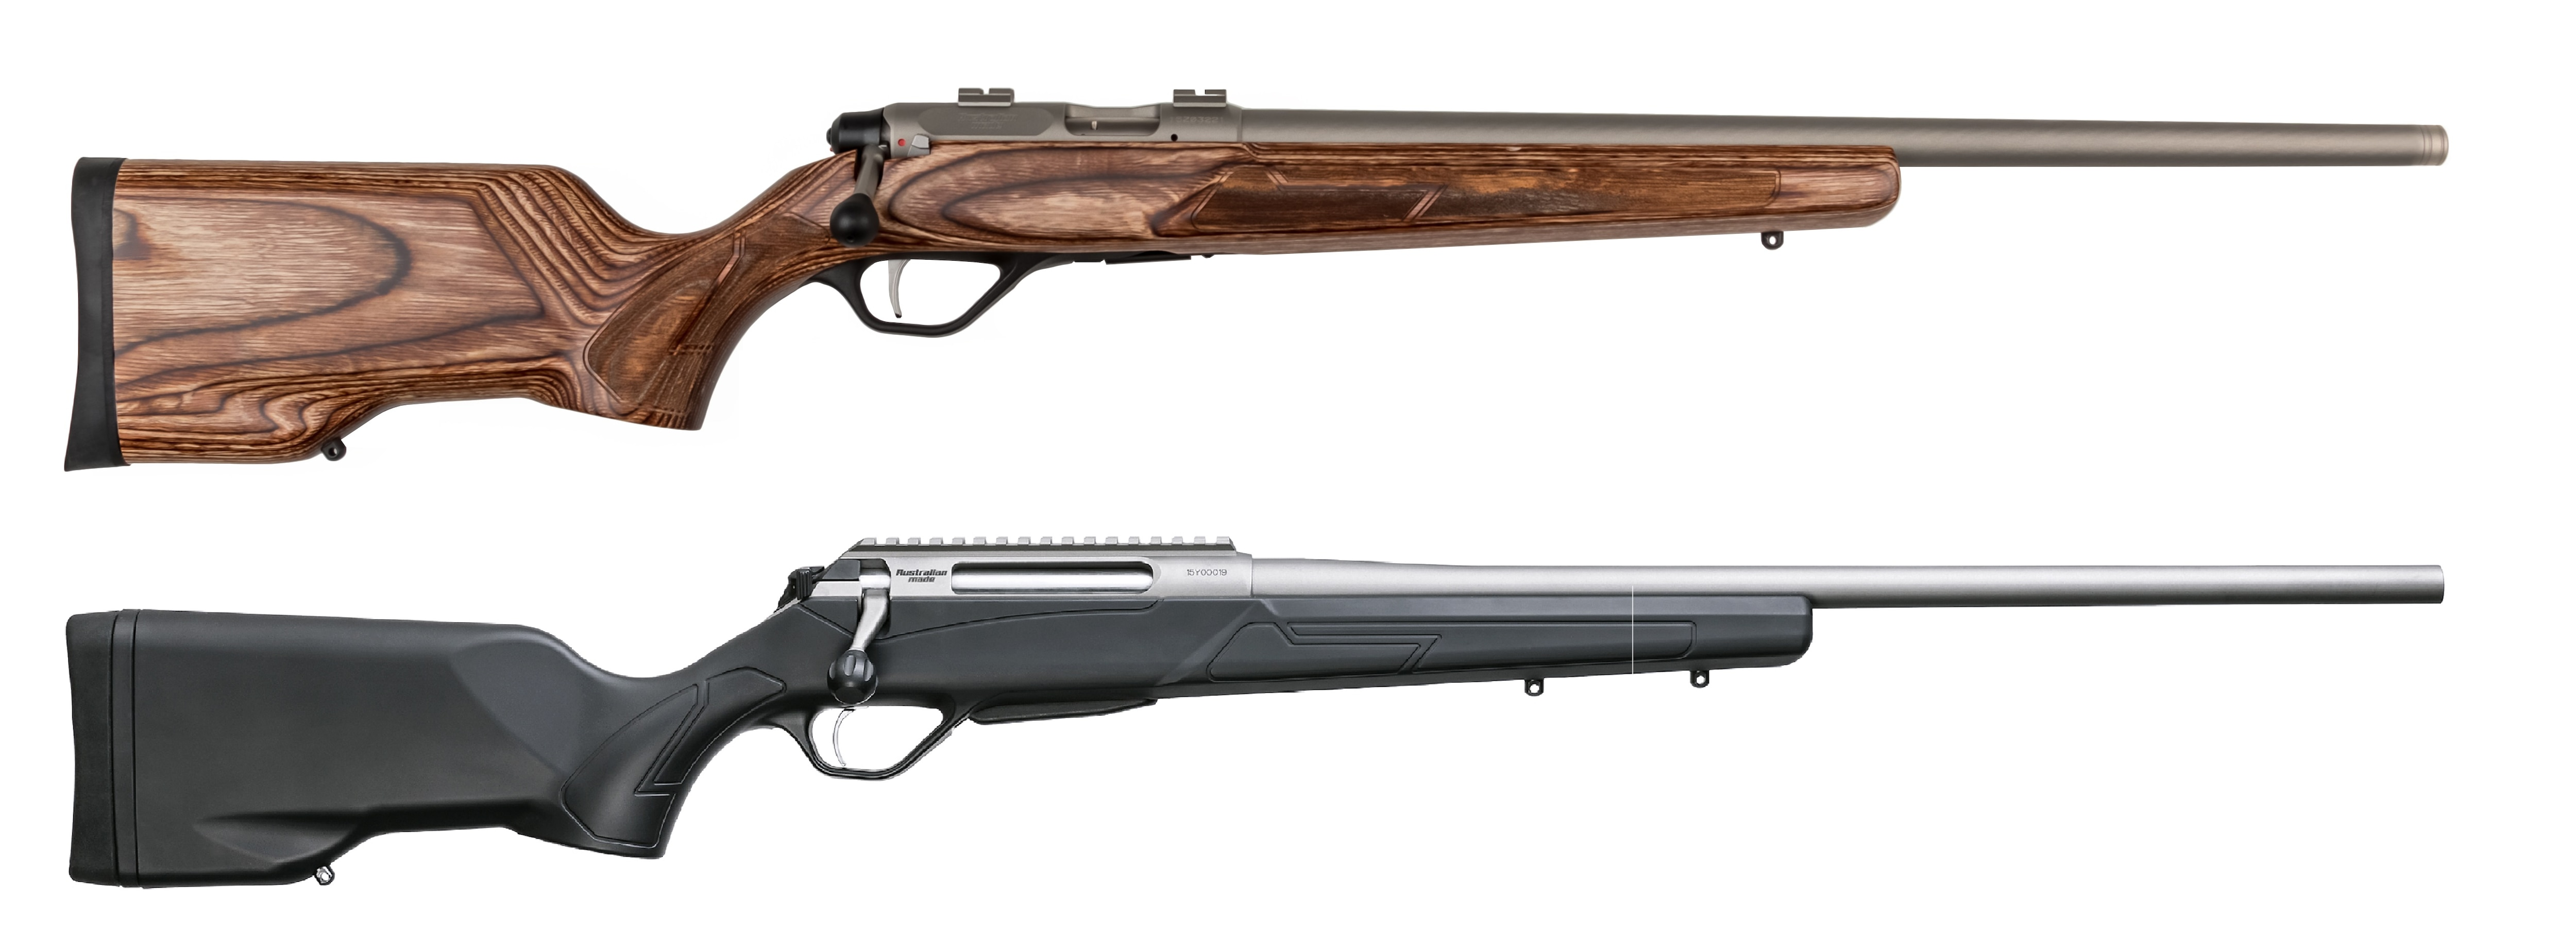 Lithgow Arms rifles